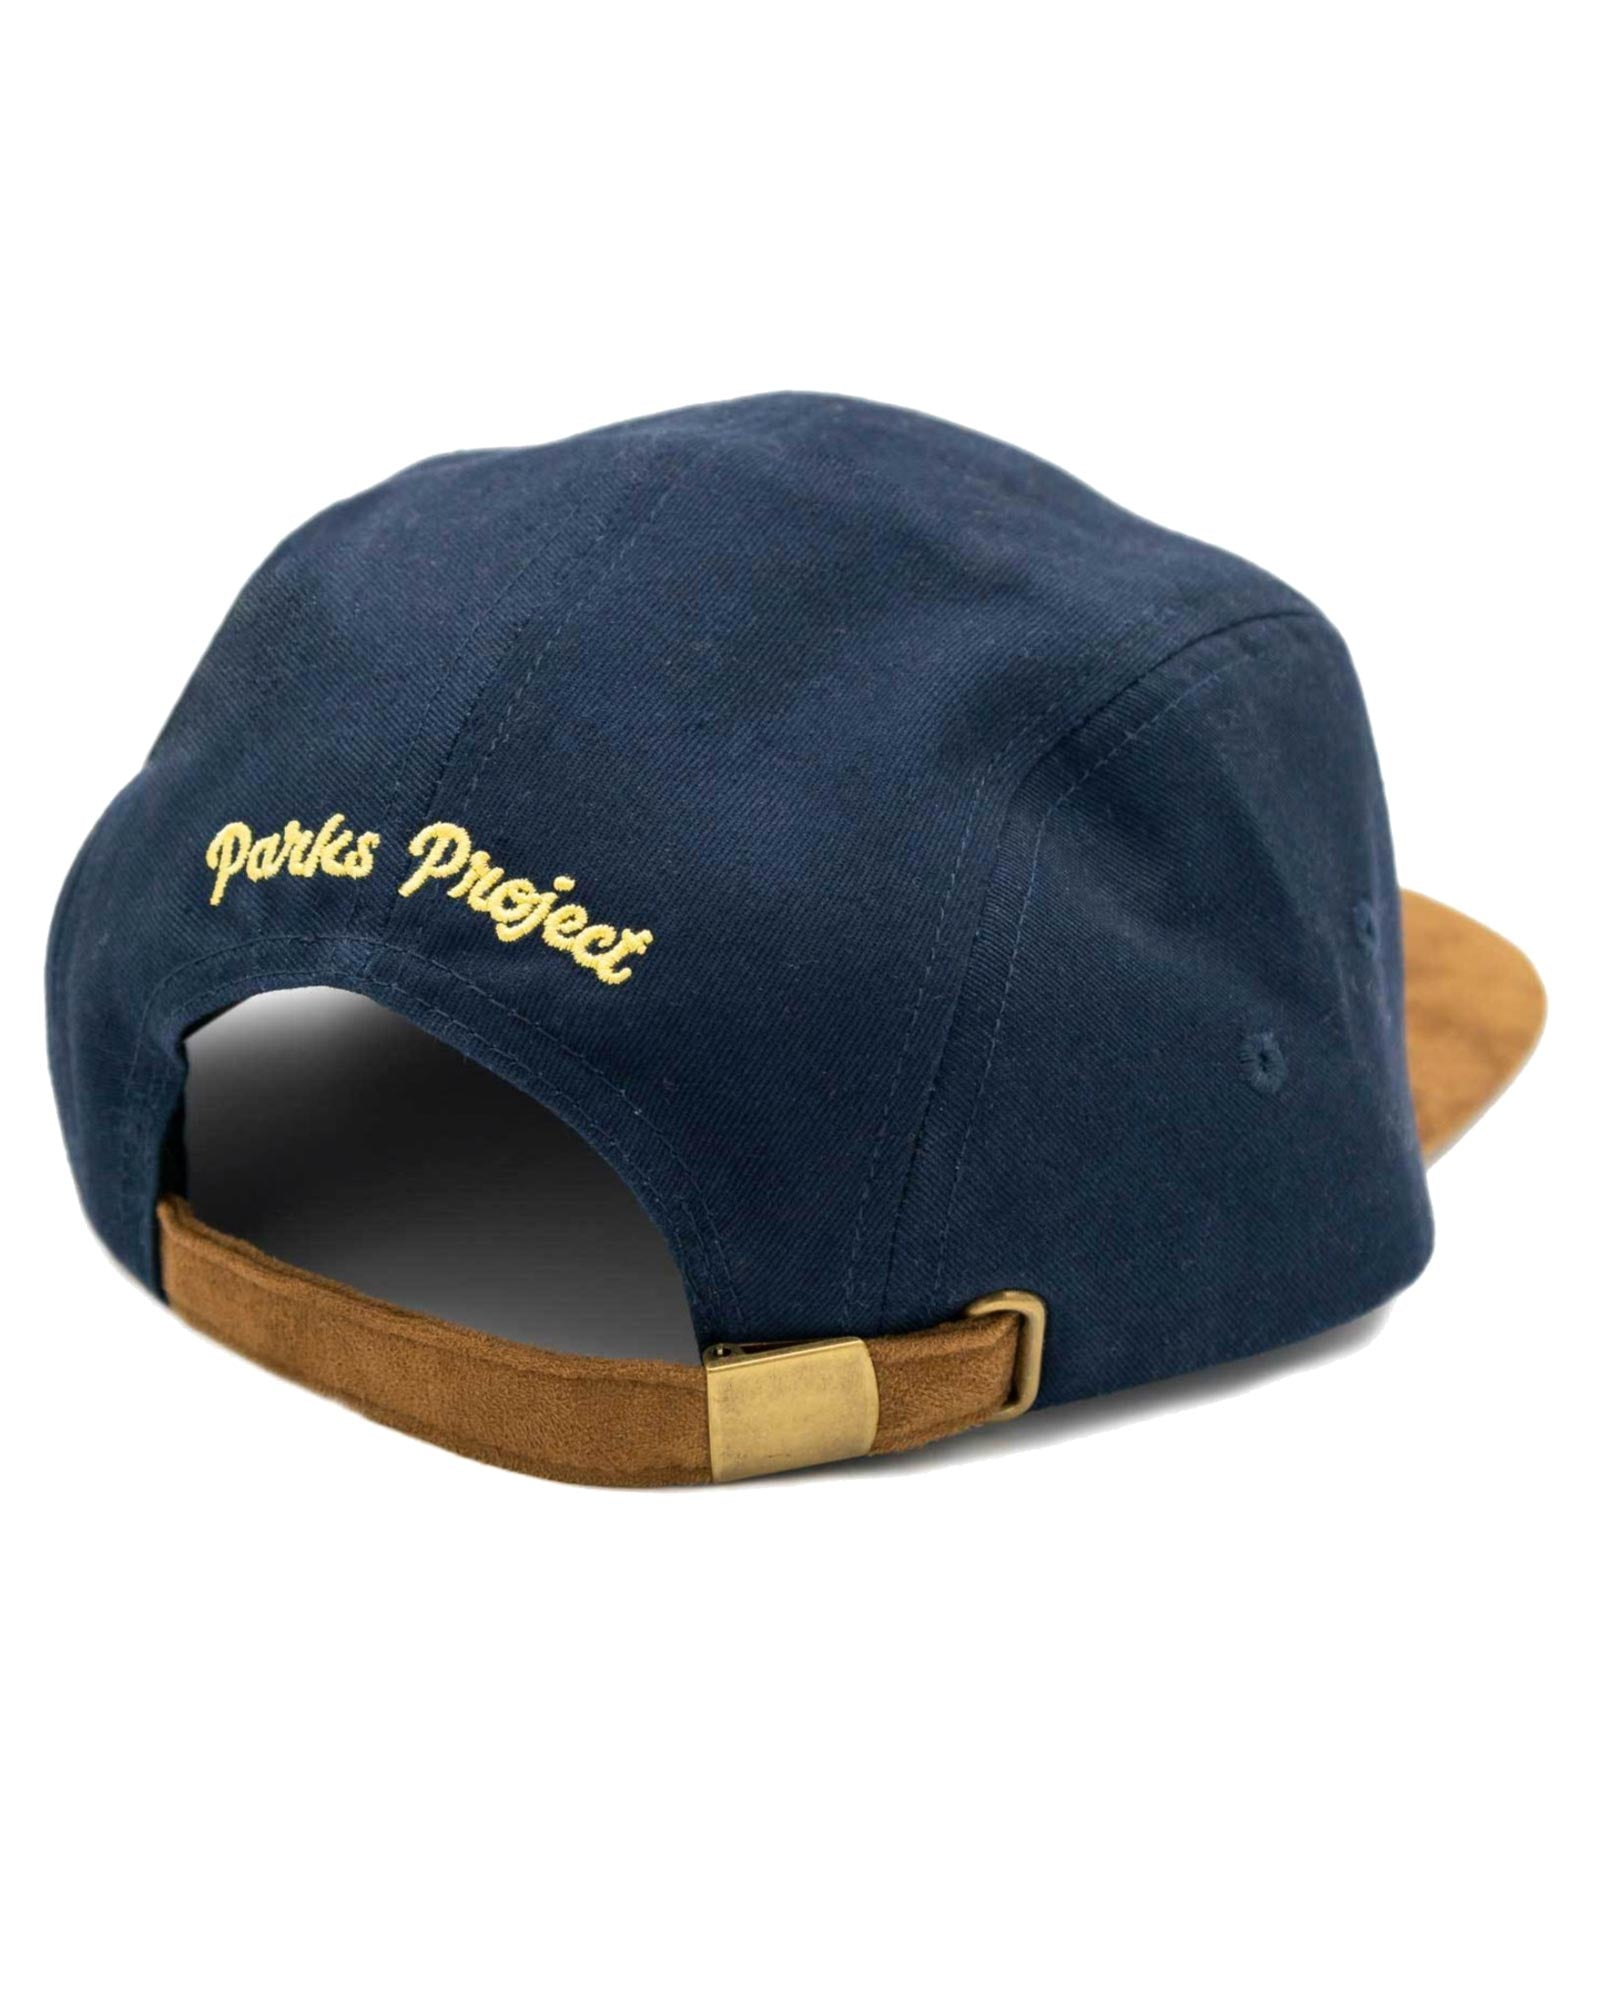 National Geographic x Parks Project Border Hat | Parks Project | National Geographic Hat